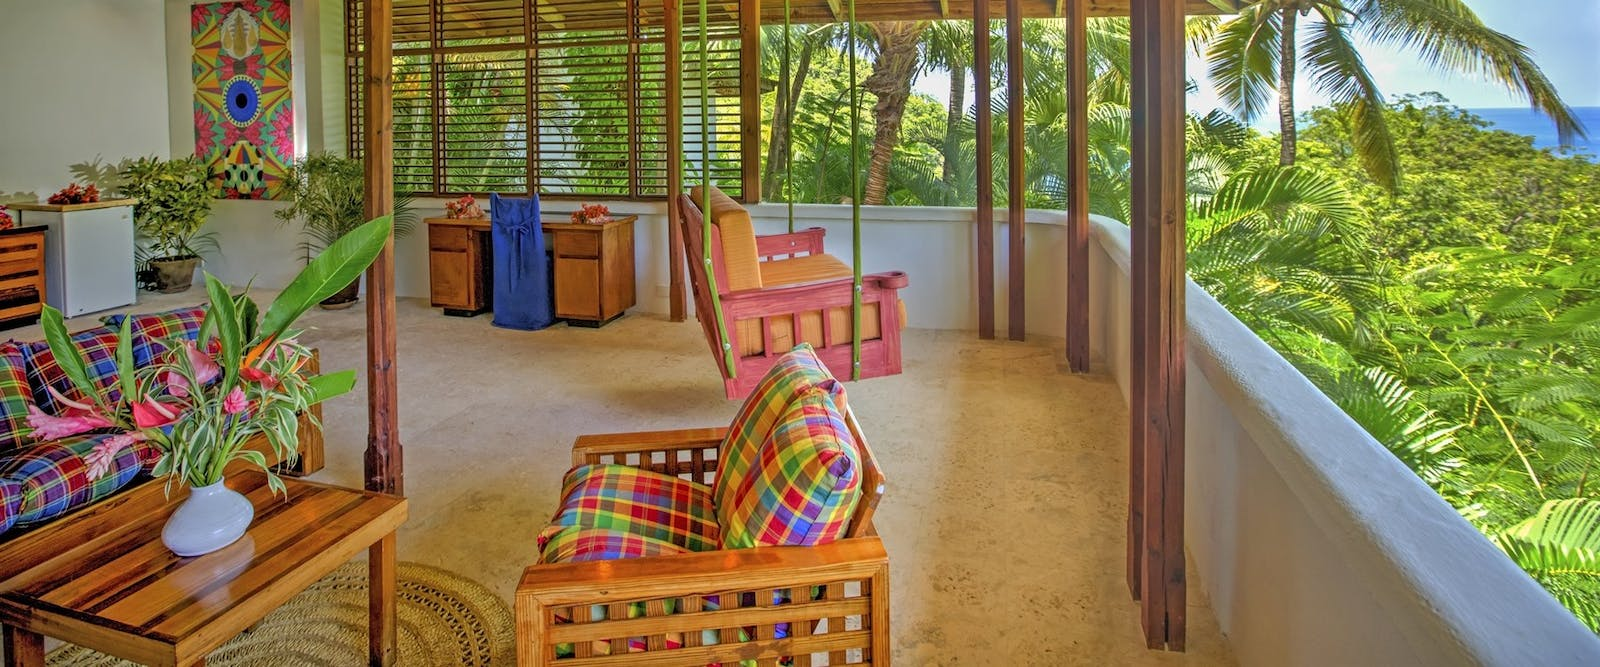 Deluxe Hillside Room at Anse Chastanet, St Lucia